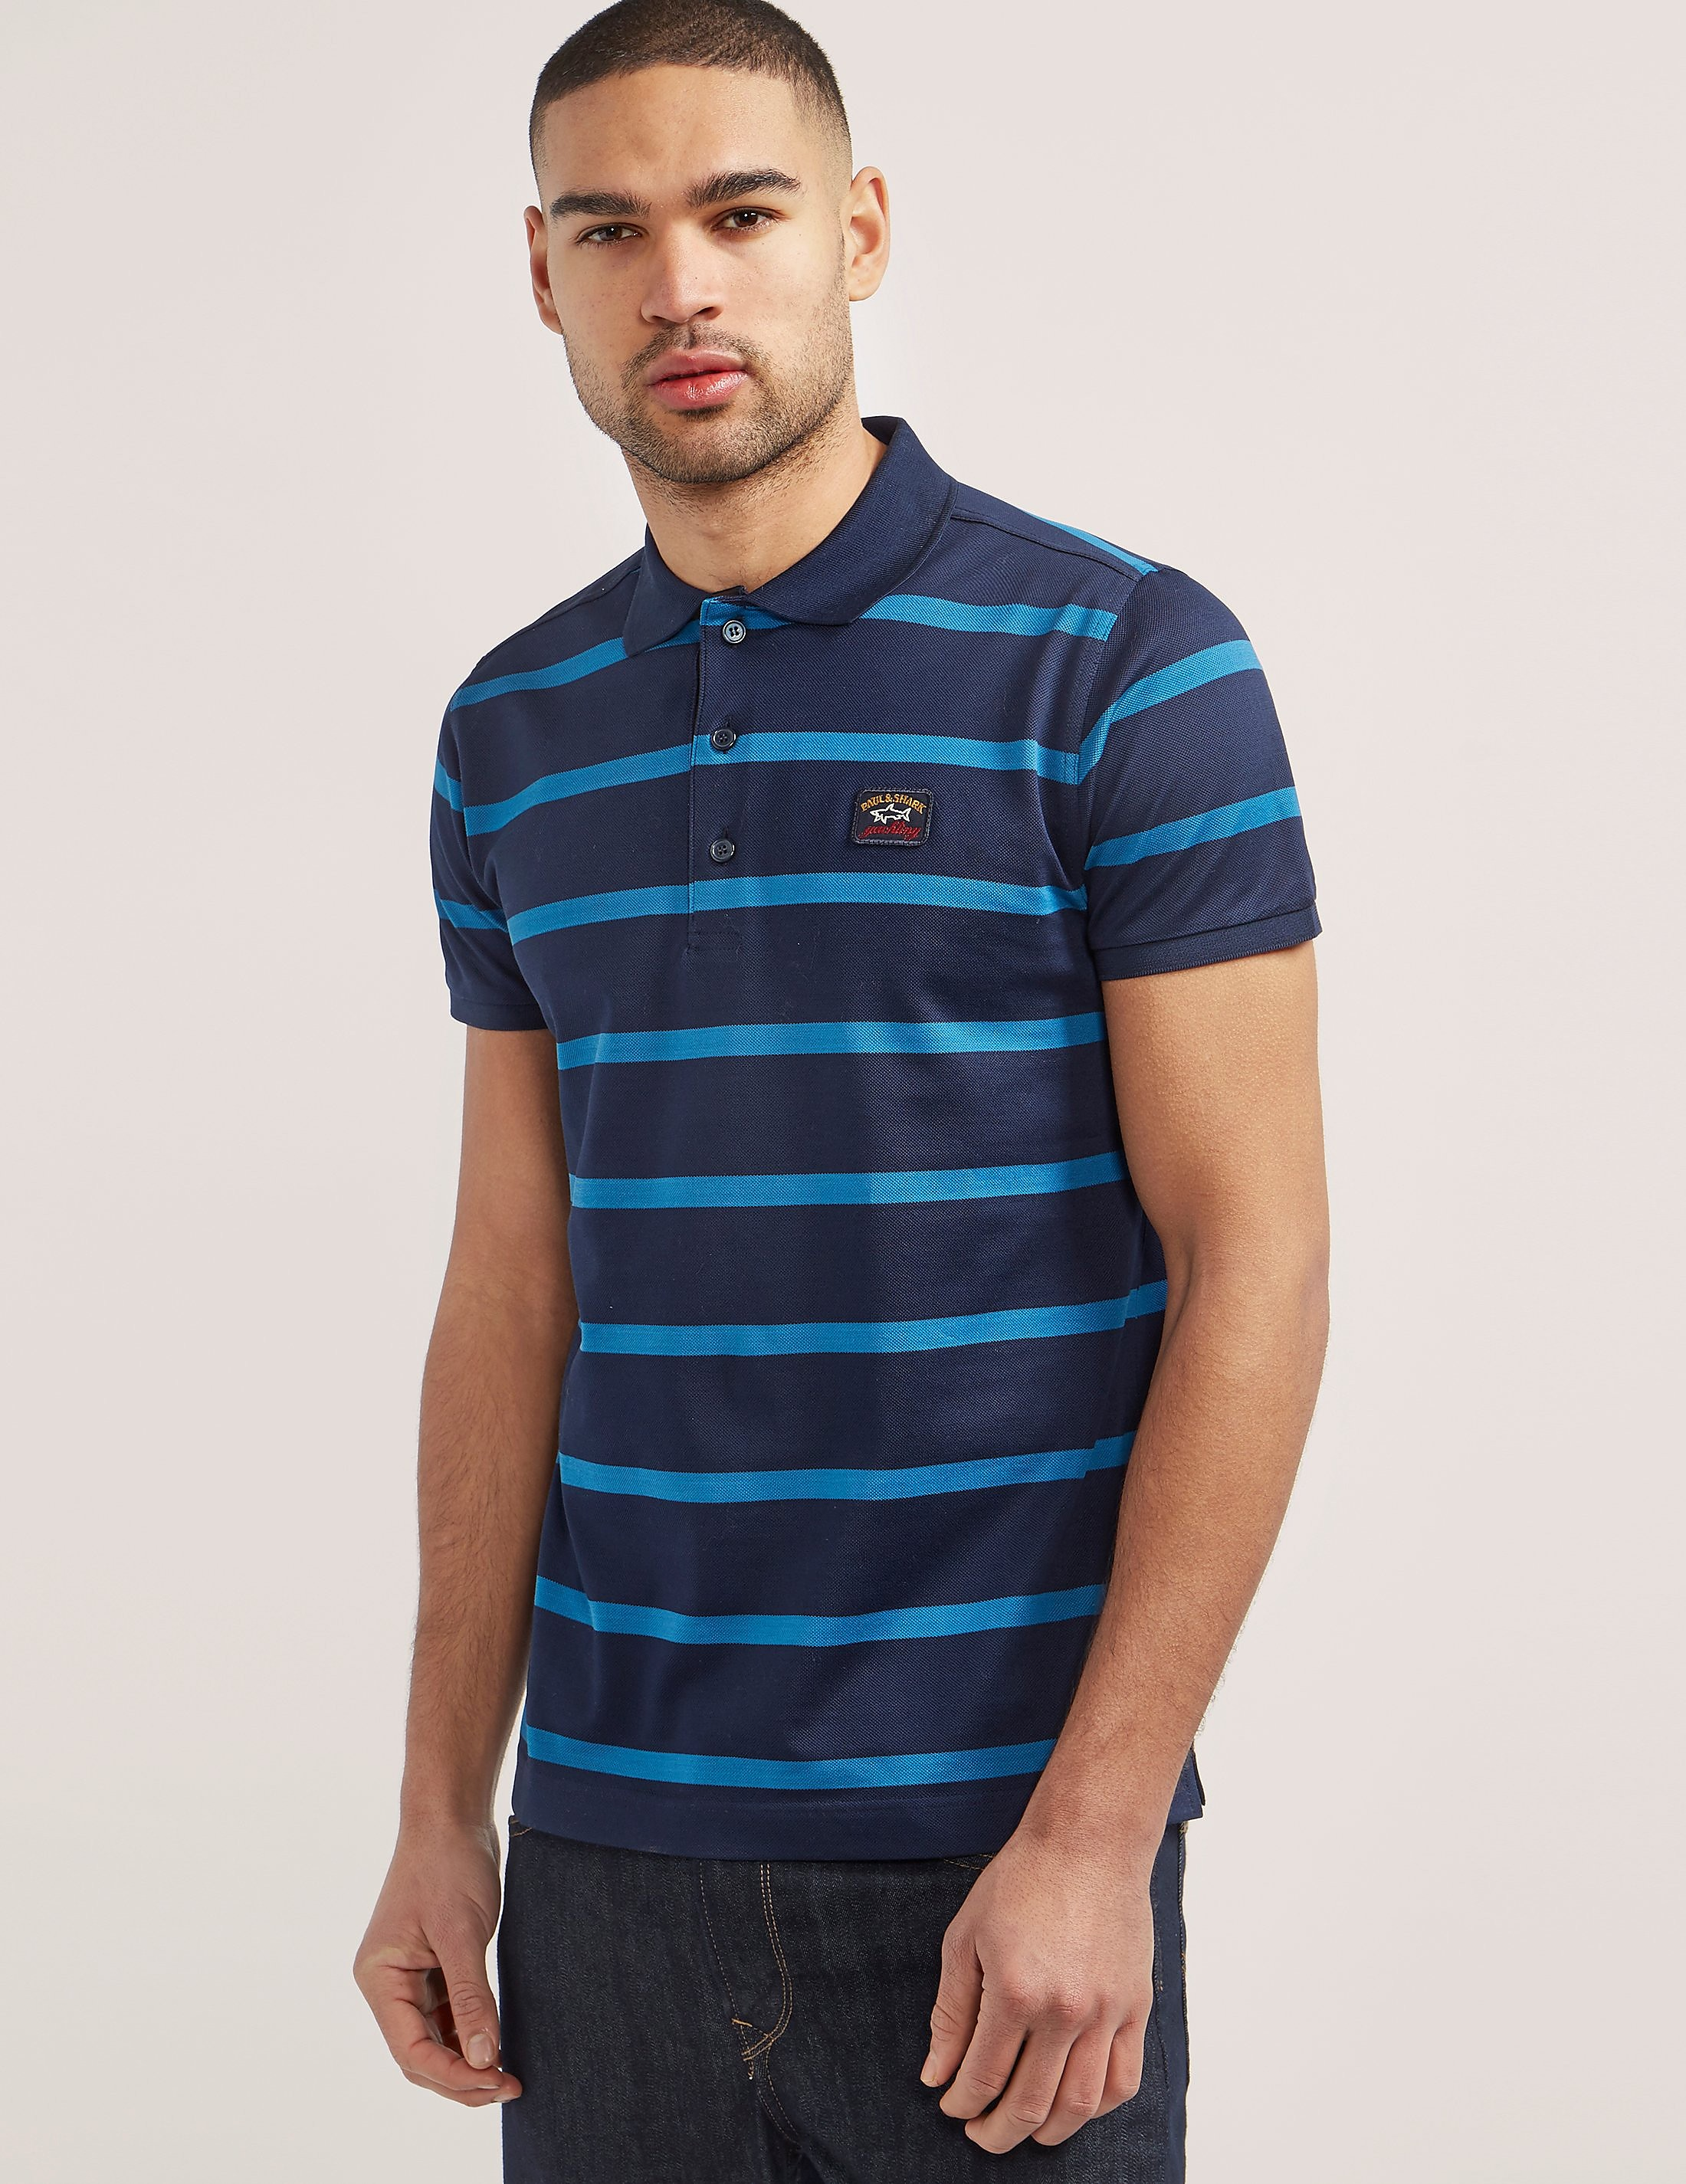 Paul and Shark Thin Stripe Polo Shirt